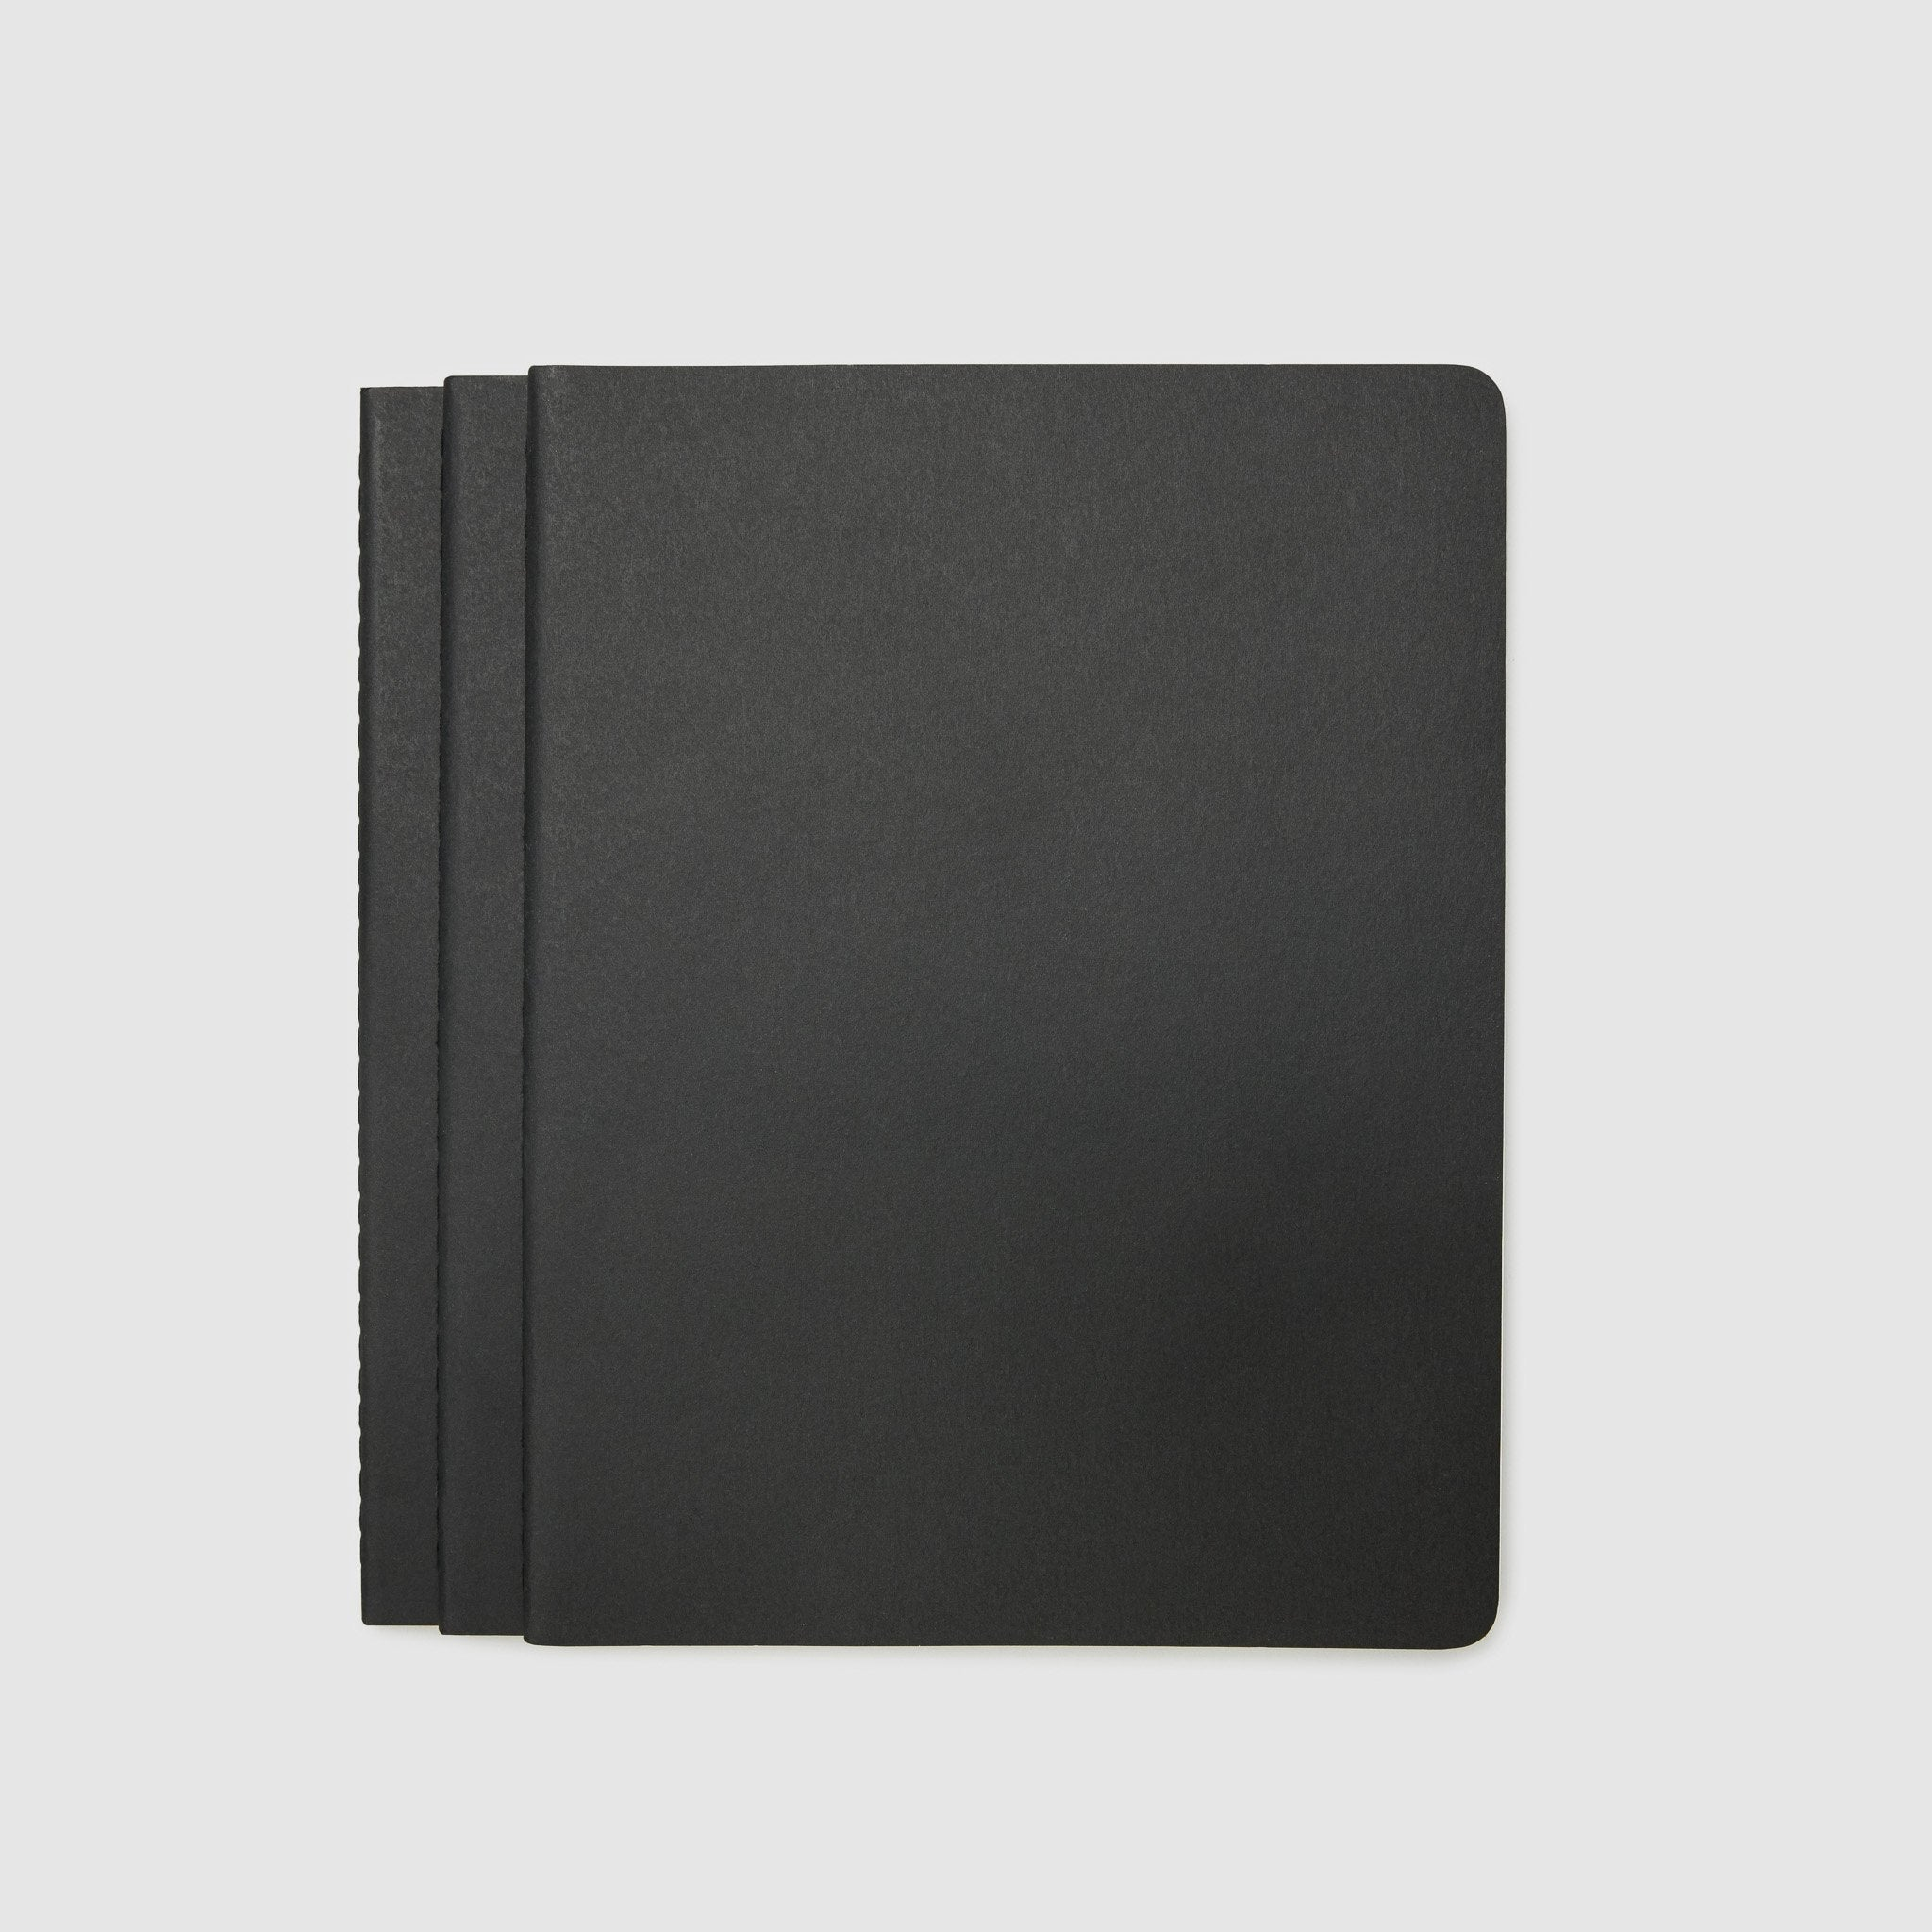 MOLESKINE® CAHIER JOURNAL - SET OF 3 PARTNER PRODUCT MOLESKINE XL _Black